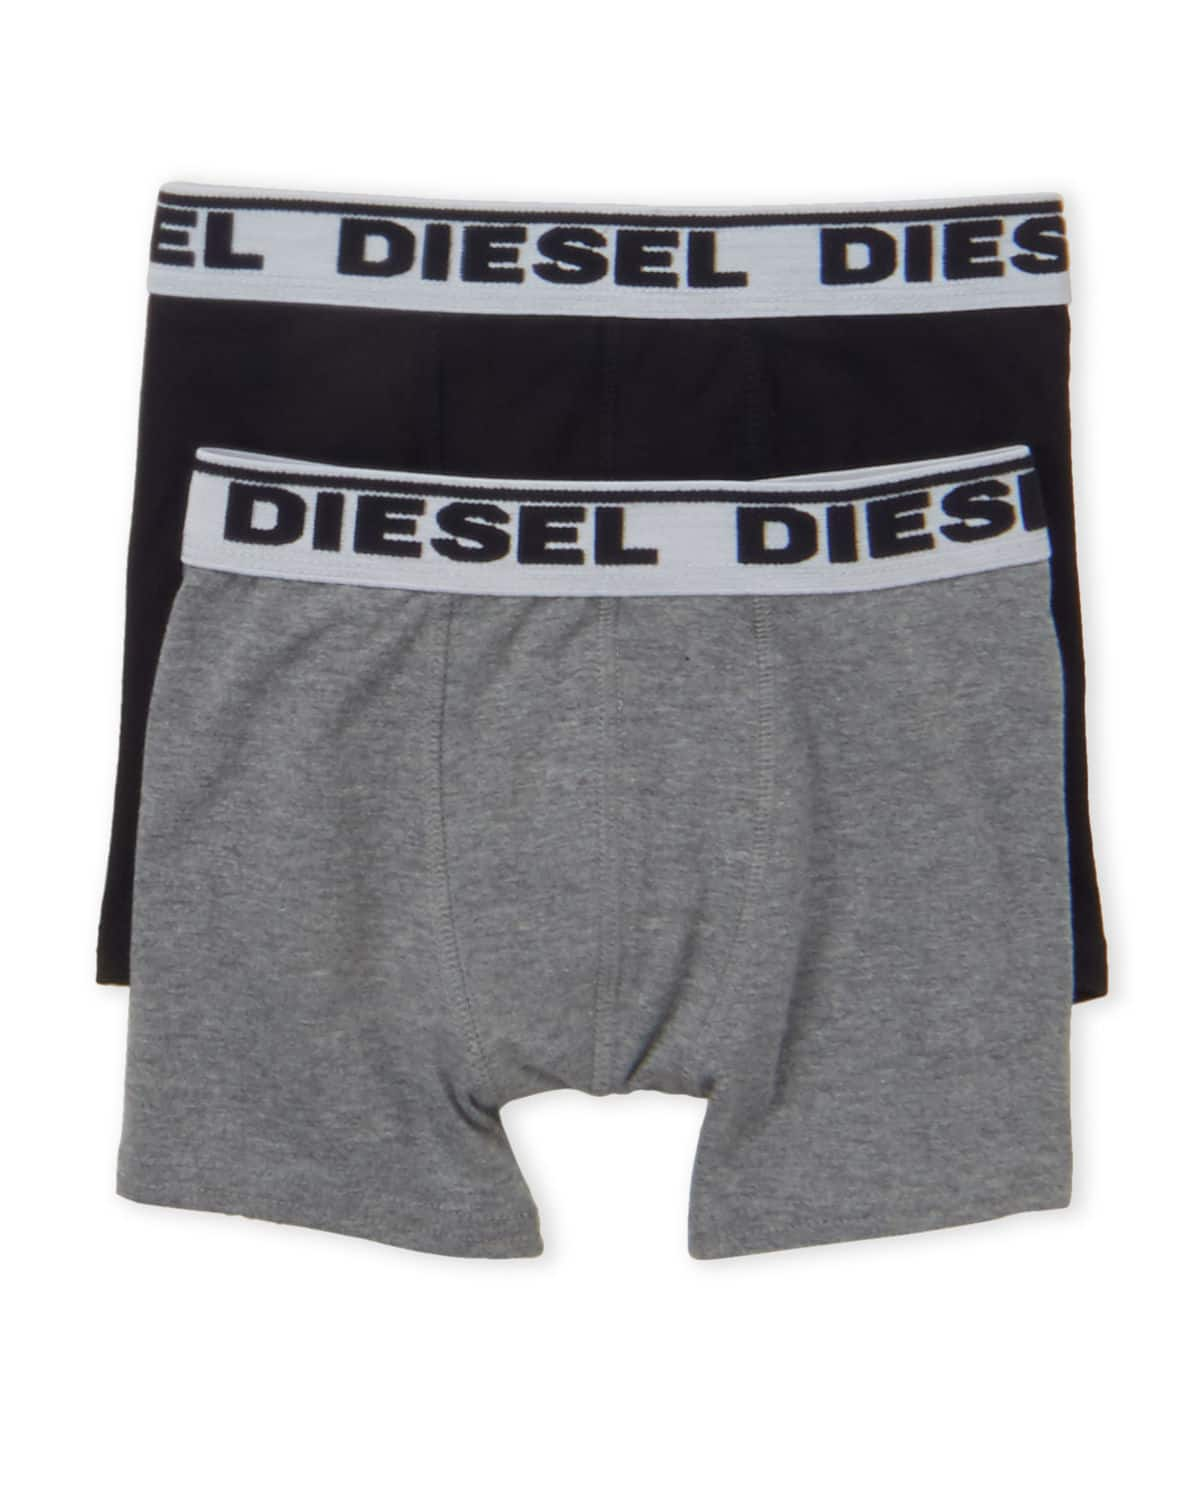 Big Boys' (8-20) Boxer Briefs: 2-Pack Diesel $7 ($3.50 each), 4-Pack Original Penguin $7.32 ($1.83 each) & More + Free Shipping on $10+